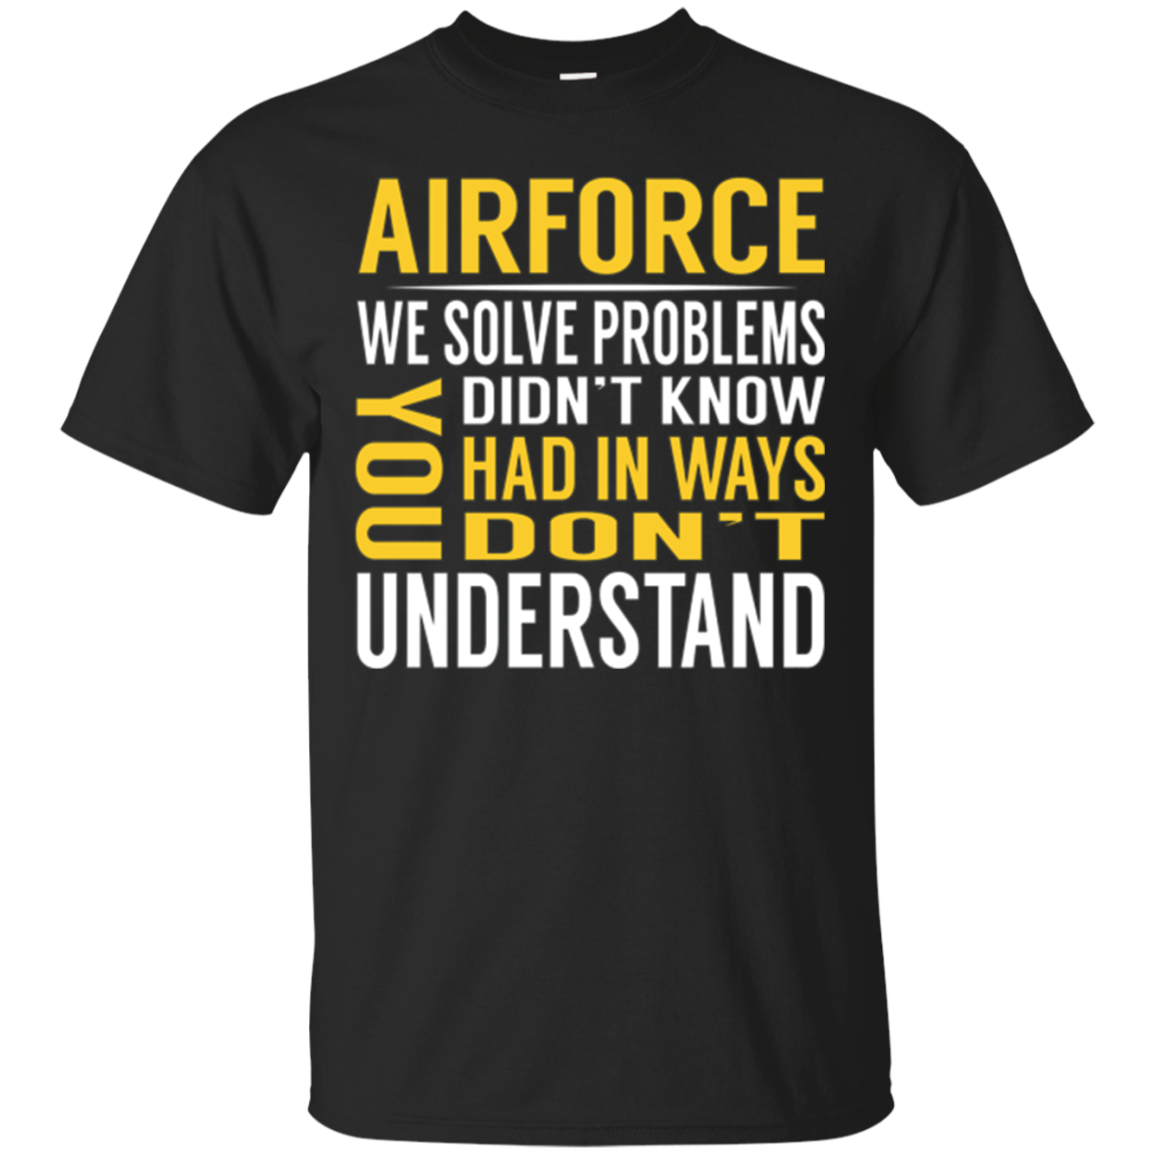 Airforce Solve Problems Tshirts